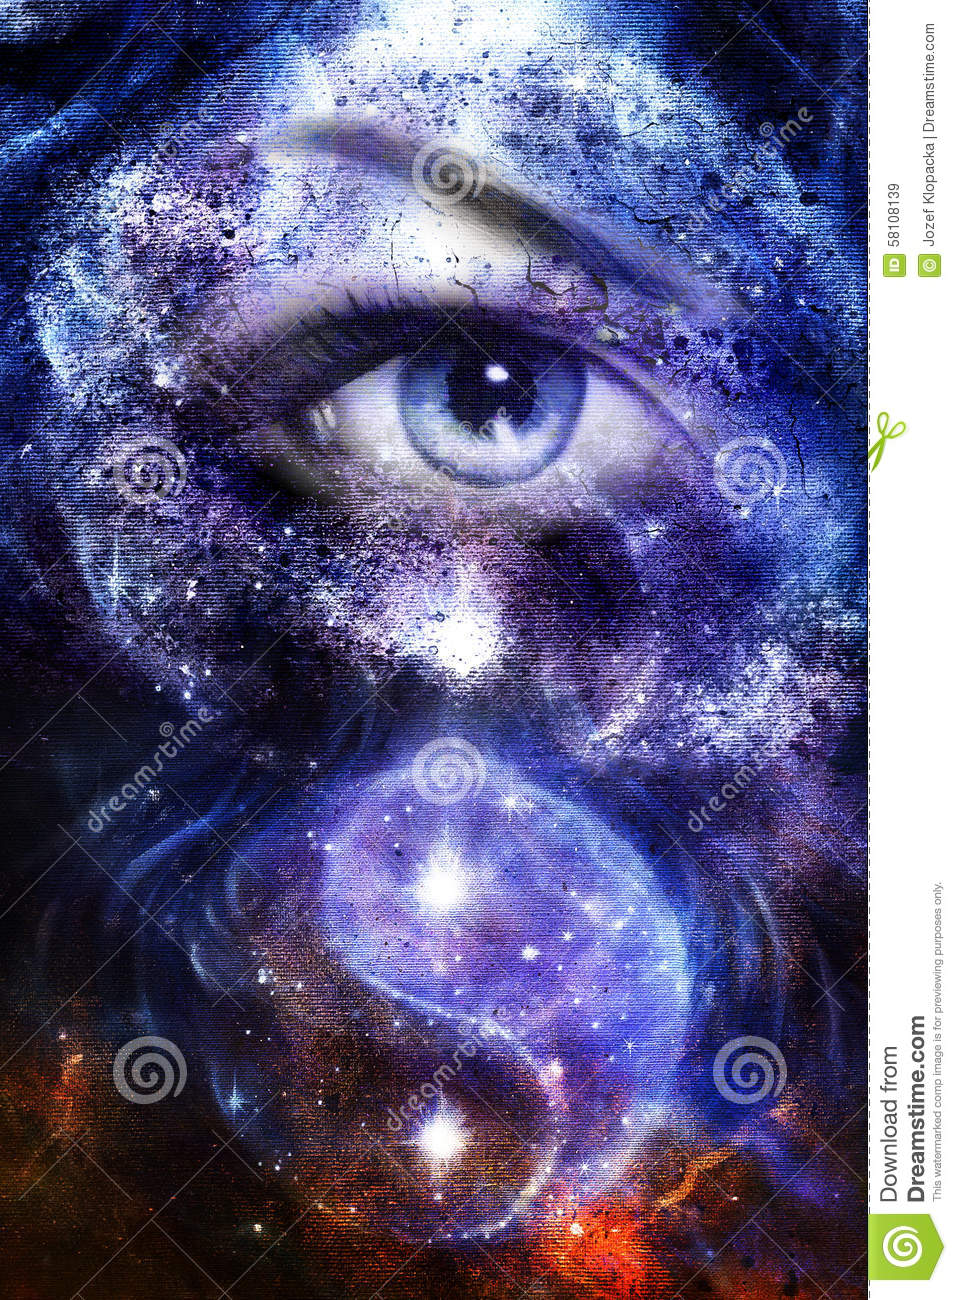 Blue Women Eye With Space And Stars With Simbol Yin Yang Abstract Painting Collage Stock